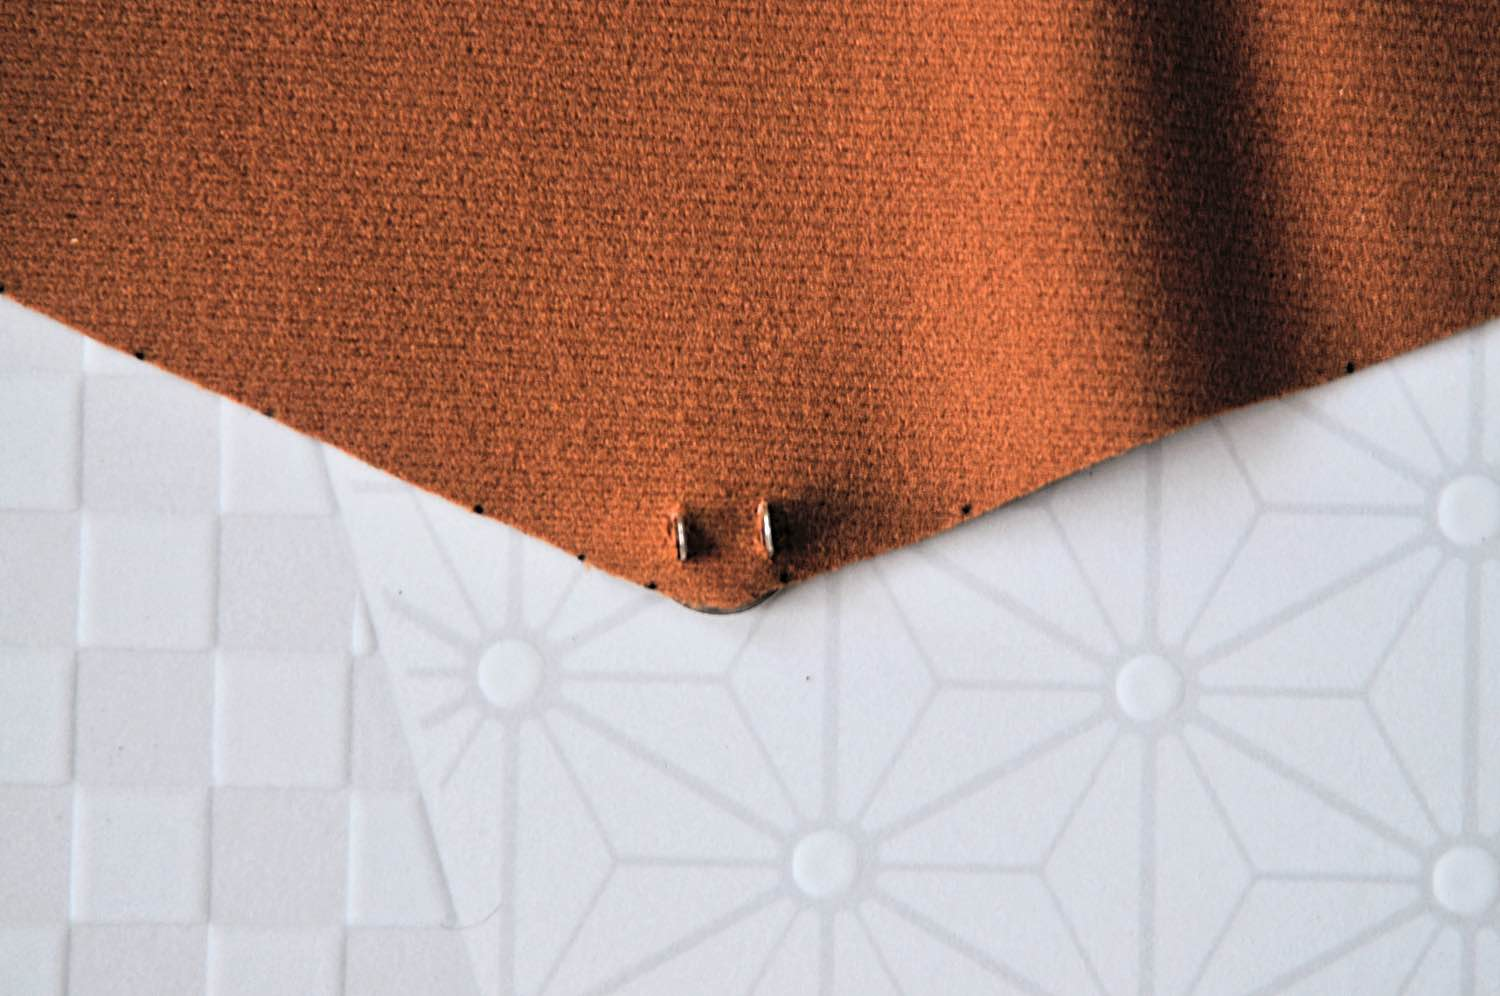 poke the clasp through the leather diy no sew clutch